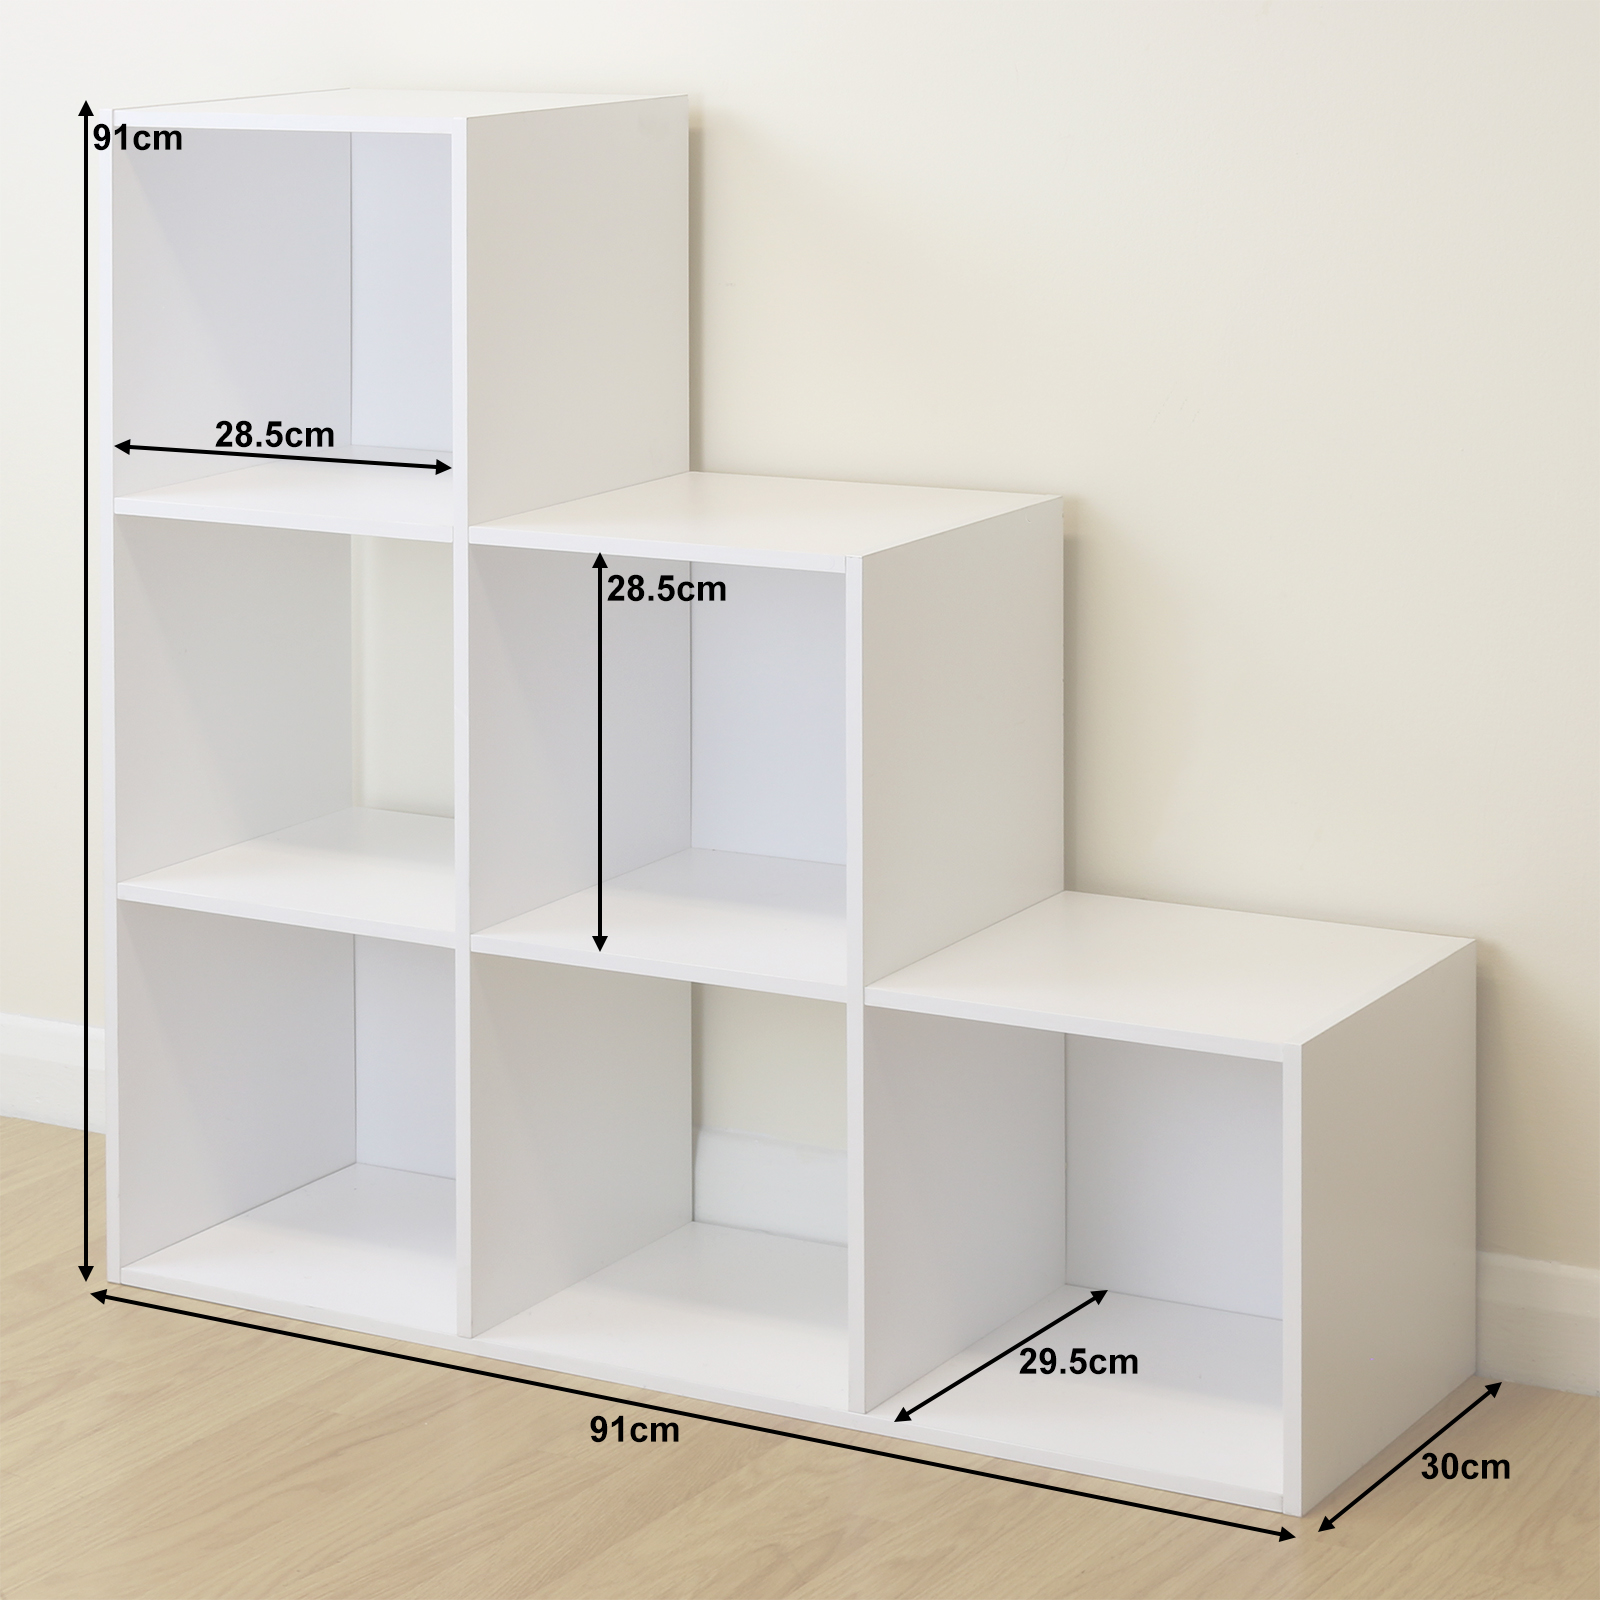 Exceptionnel Sentinel 6 Cube Kids White Toy/Games Storage Unit Girls/Boys/Childs Bedroom  Shelves